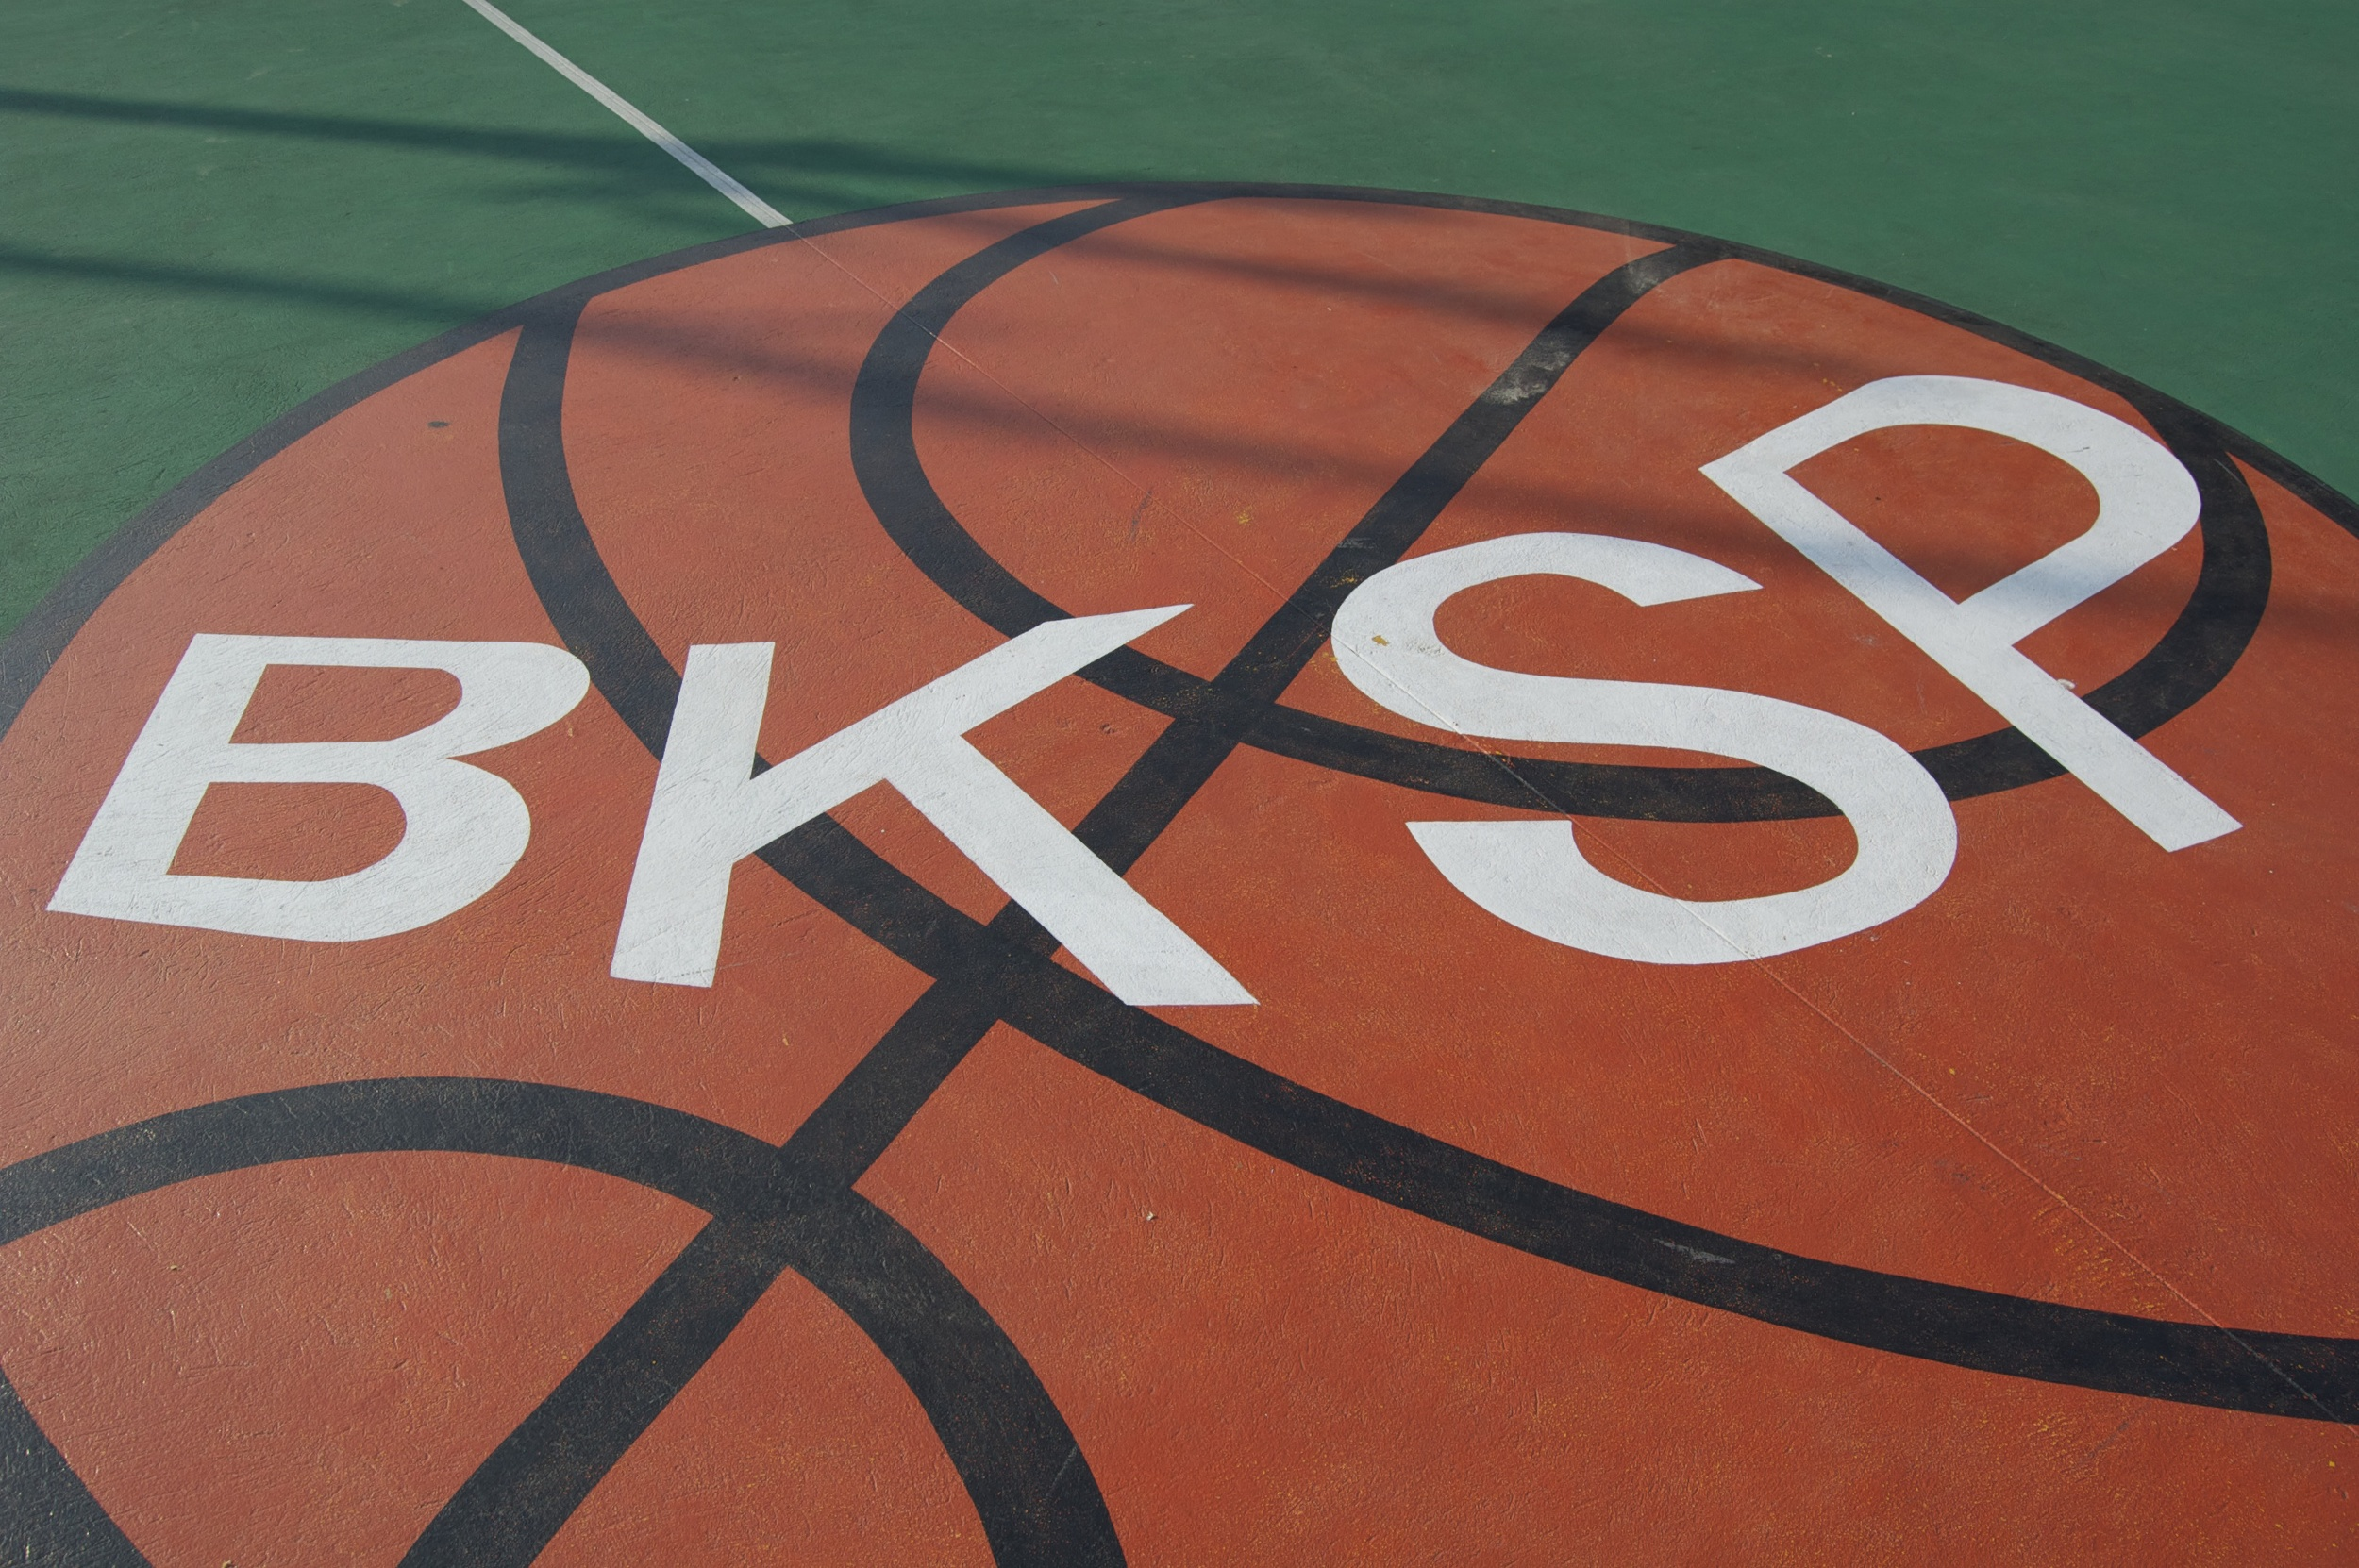 BKSP basketball court